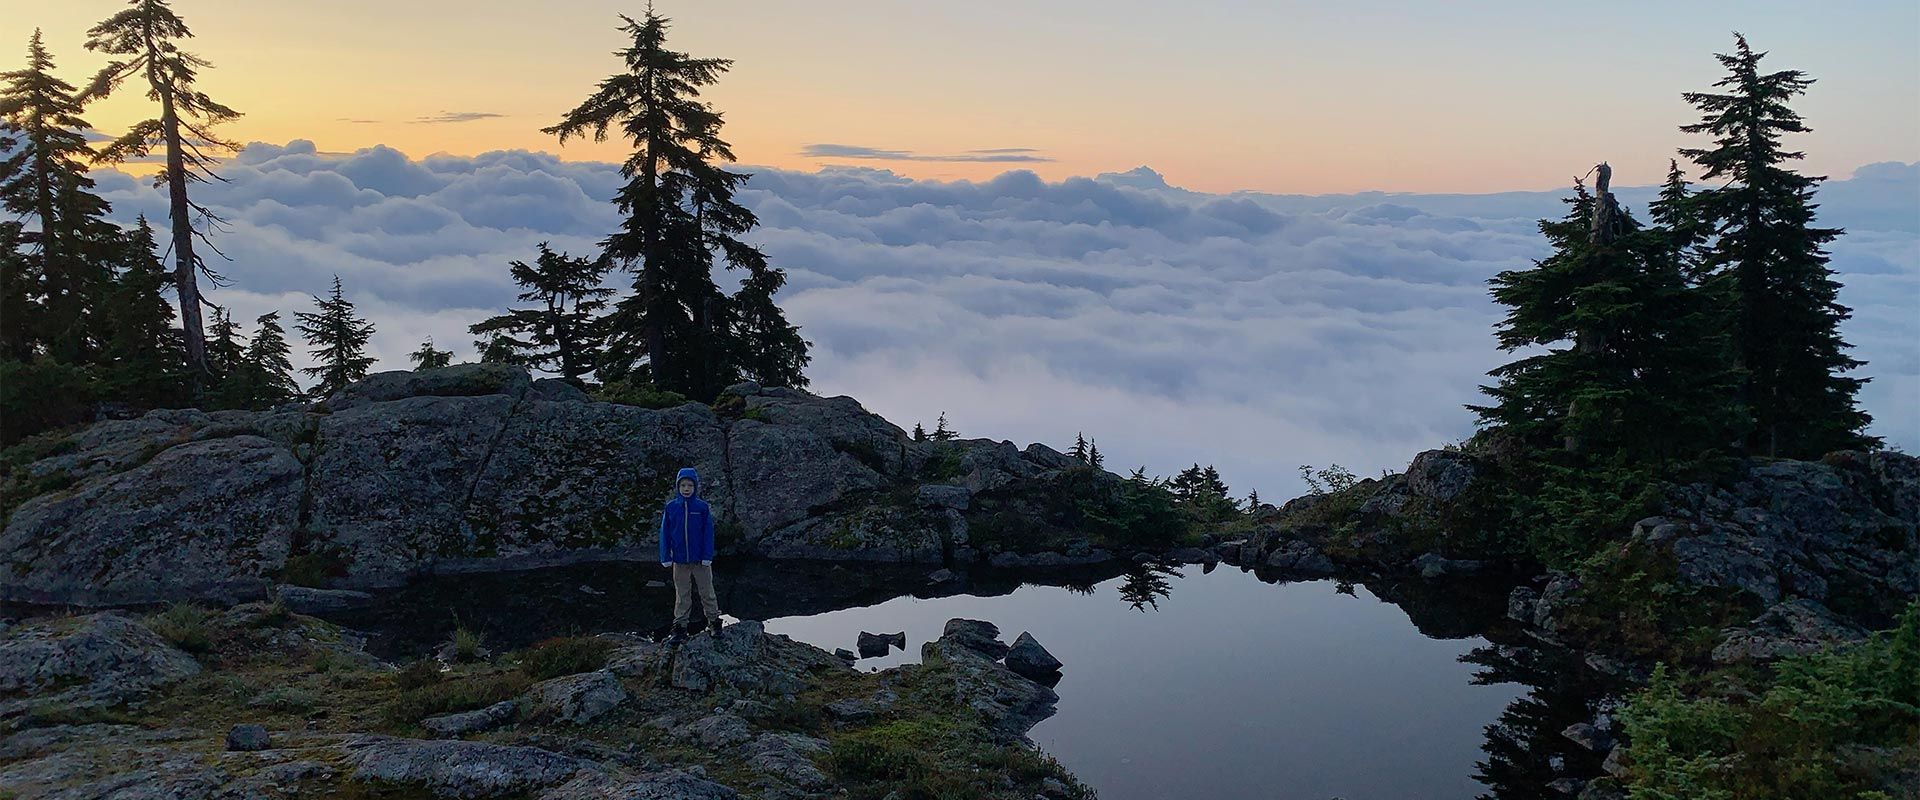 vimff family hikes north vancouver title bg